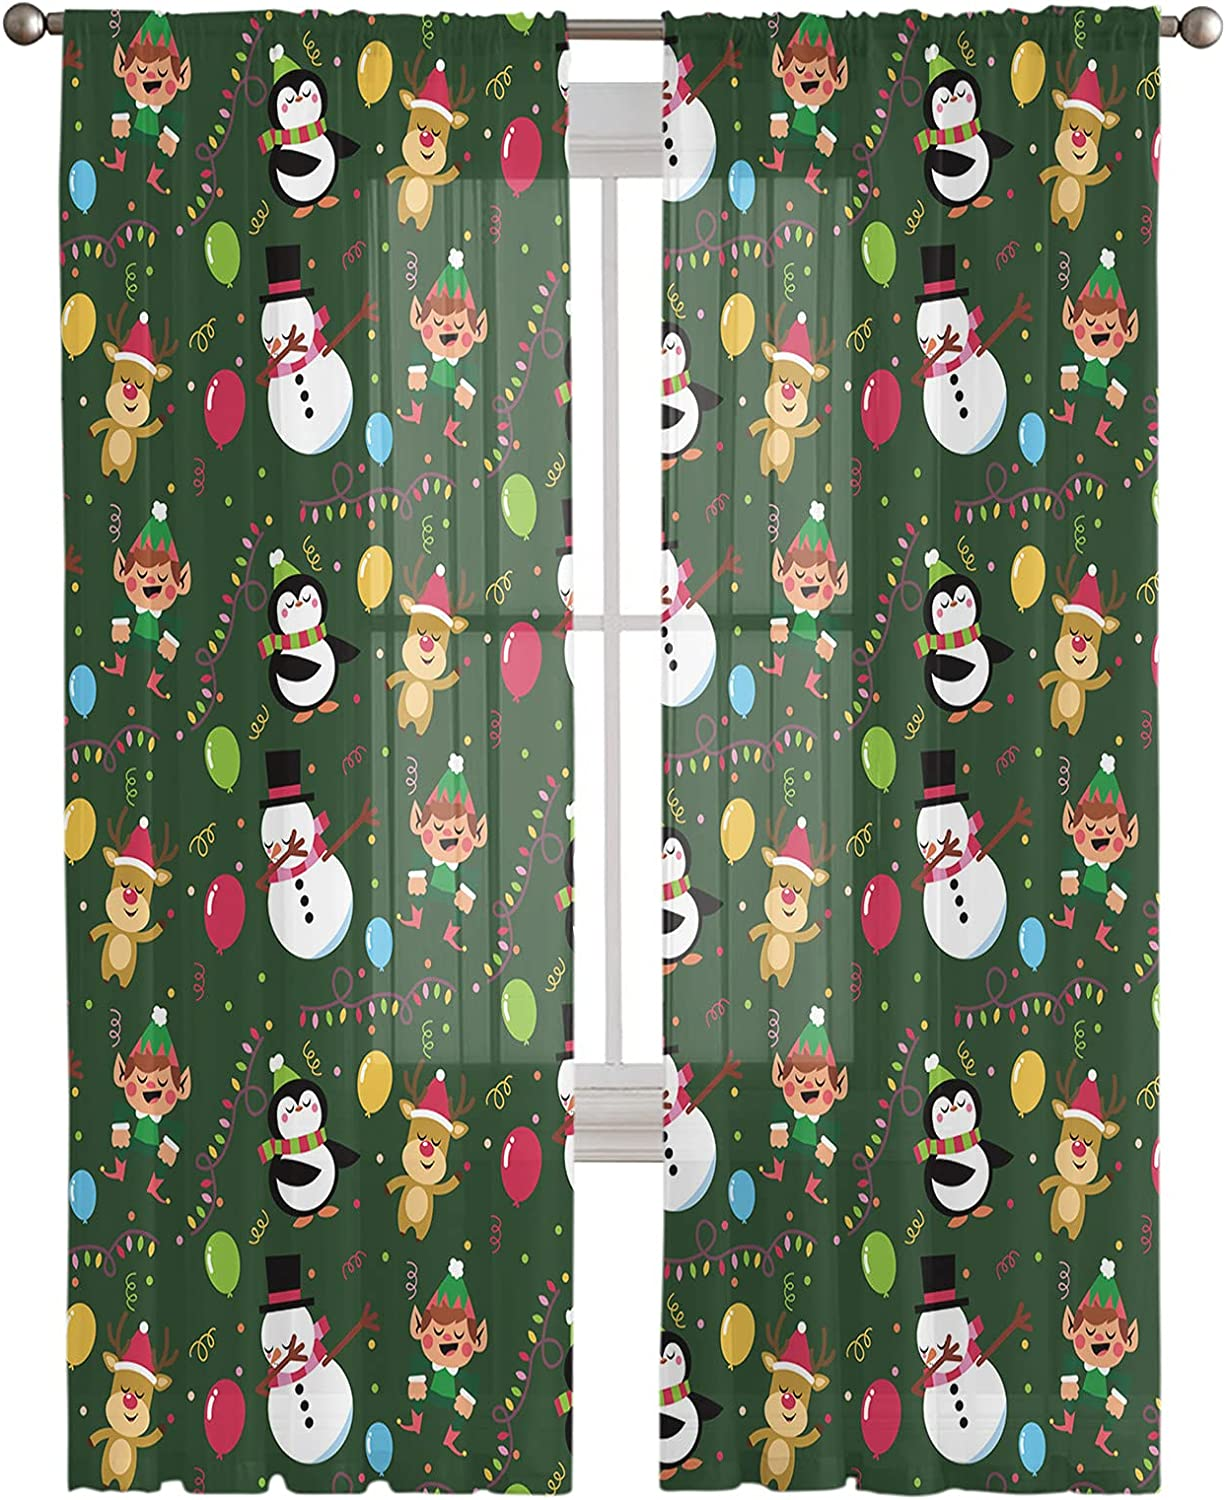 All items in the store 2 Panels Window Semi-Sheer Curtains Snow Cartoon Merry Christmas Ranking TOP17